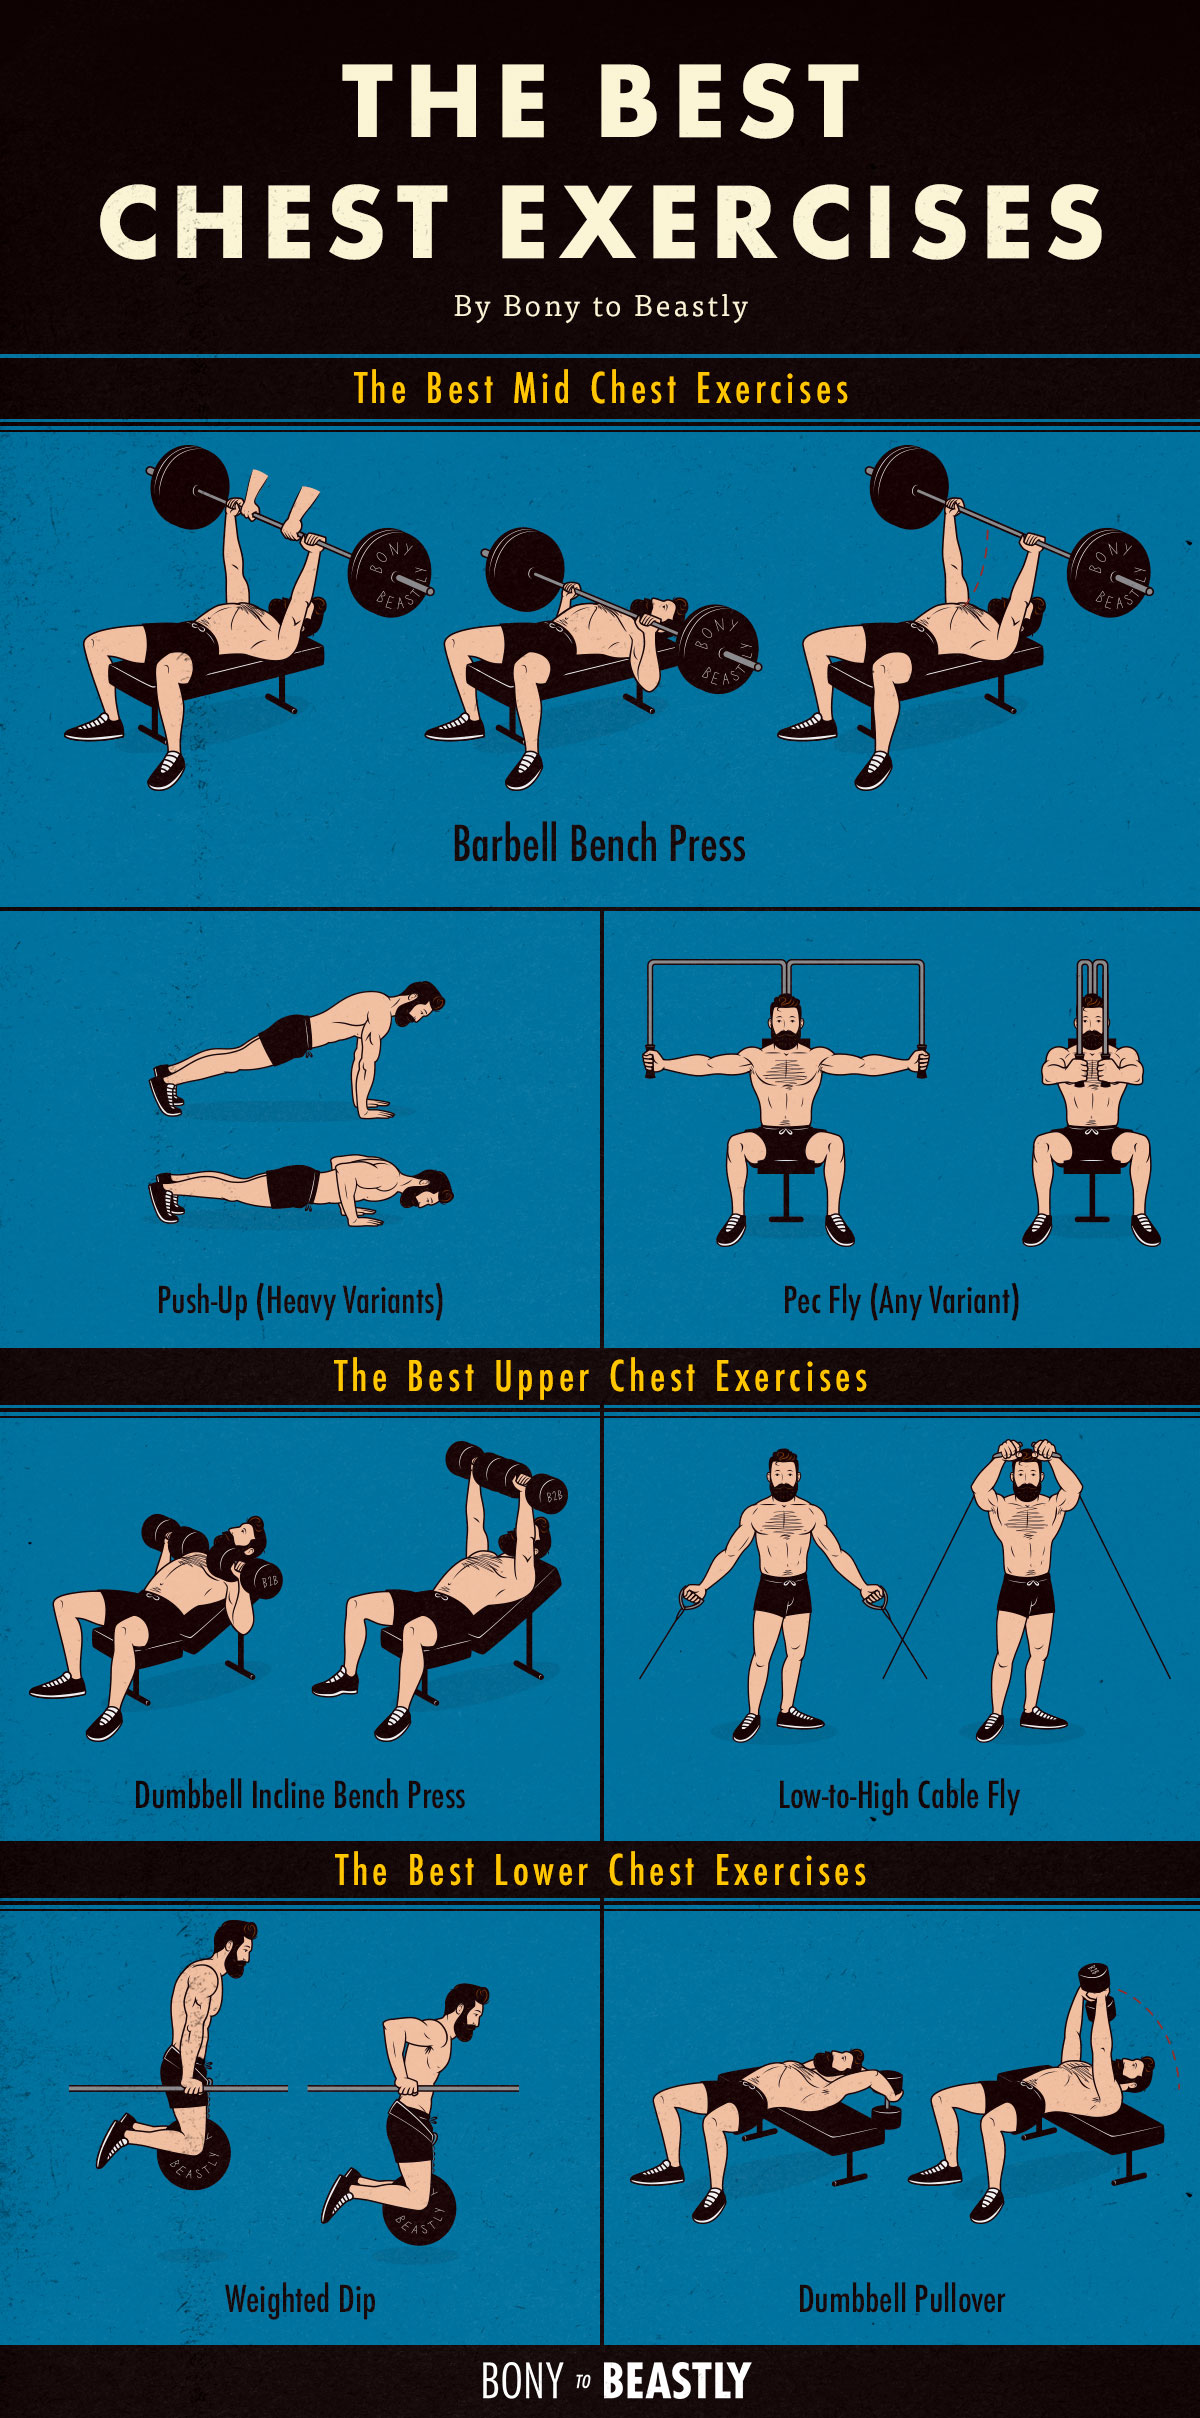 An illustrated chart of the best chest exercises